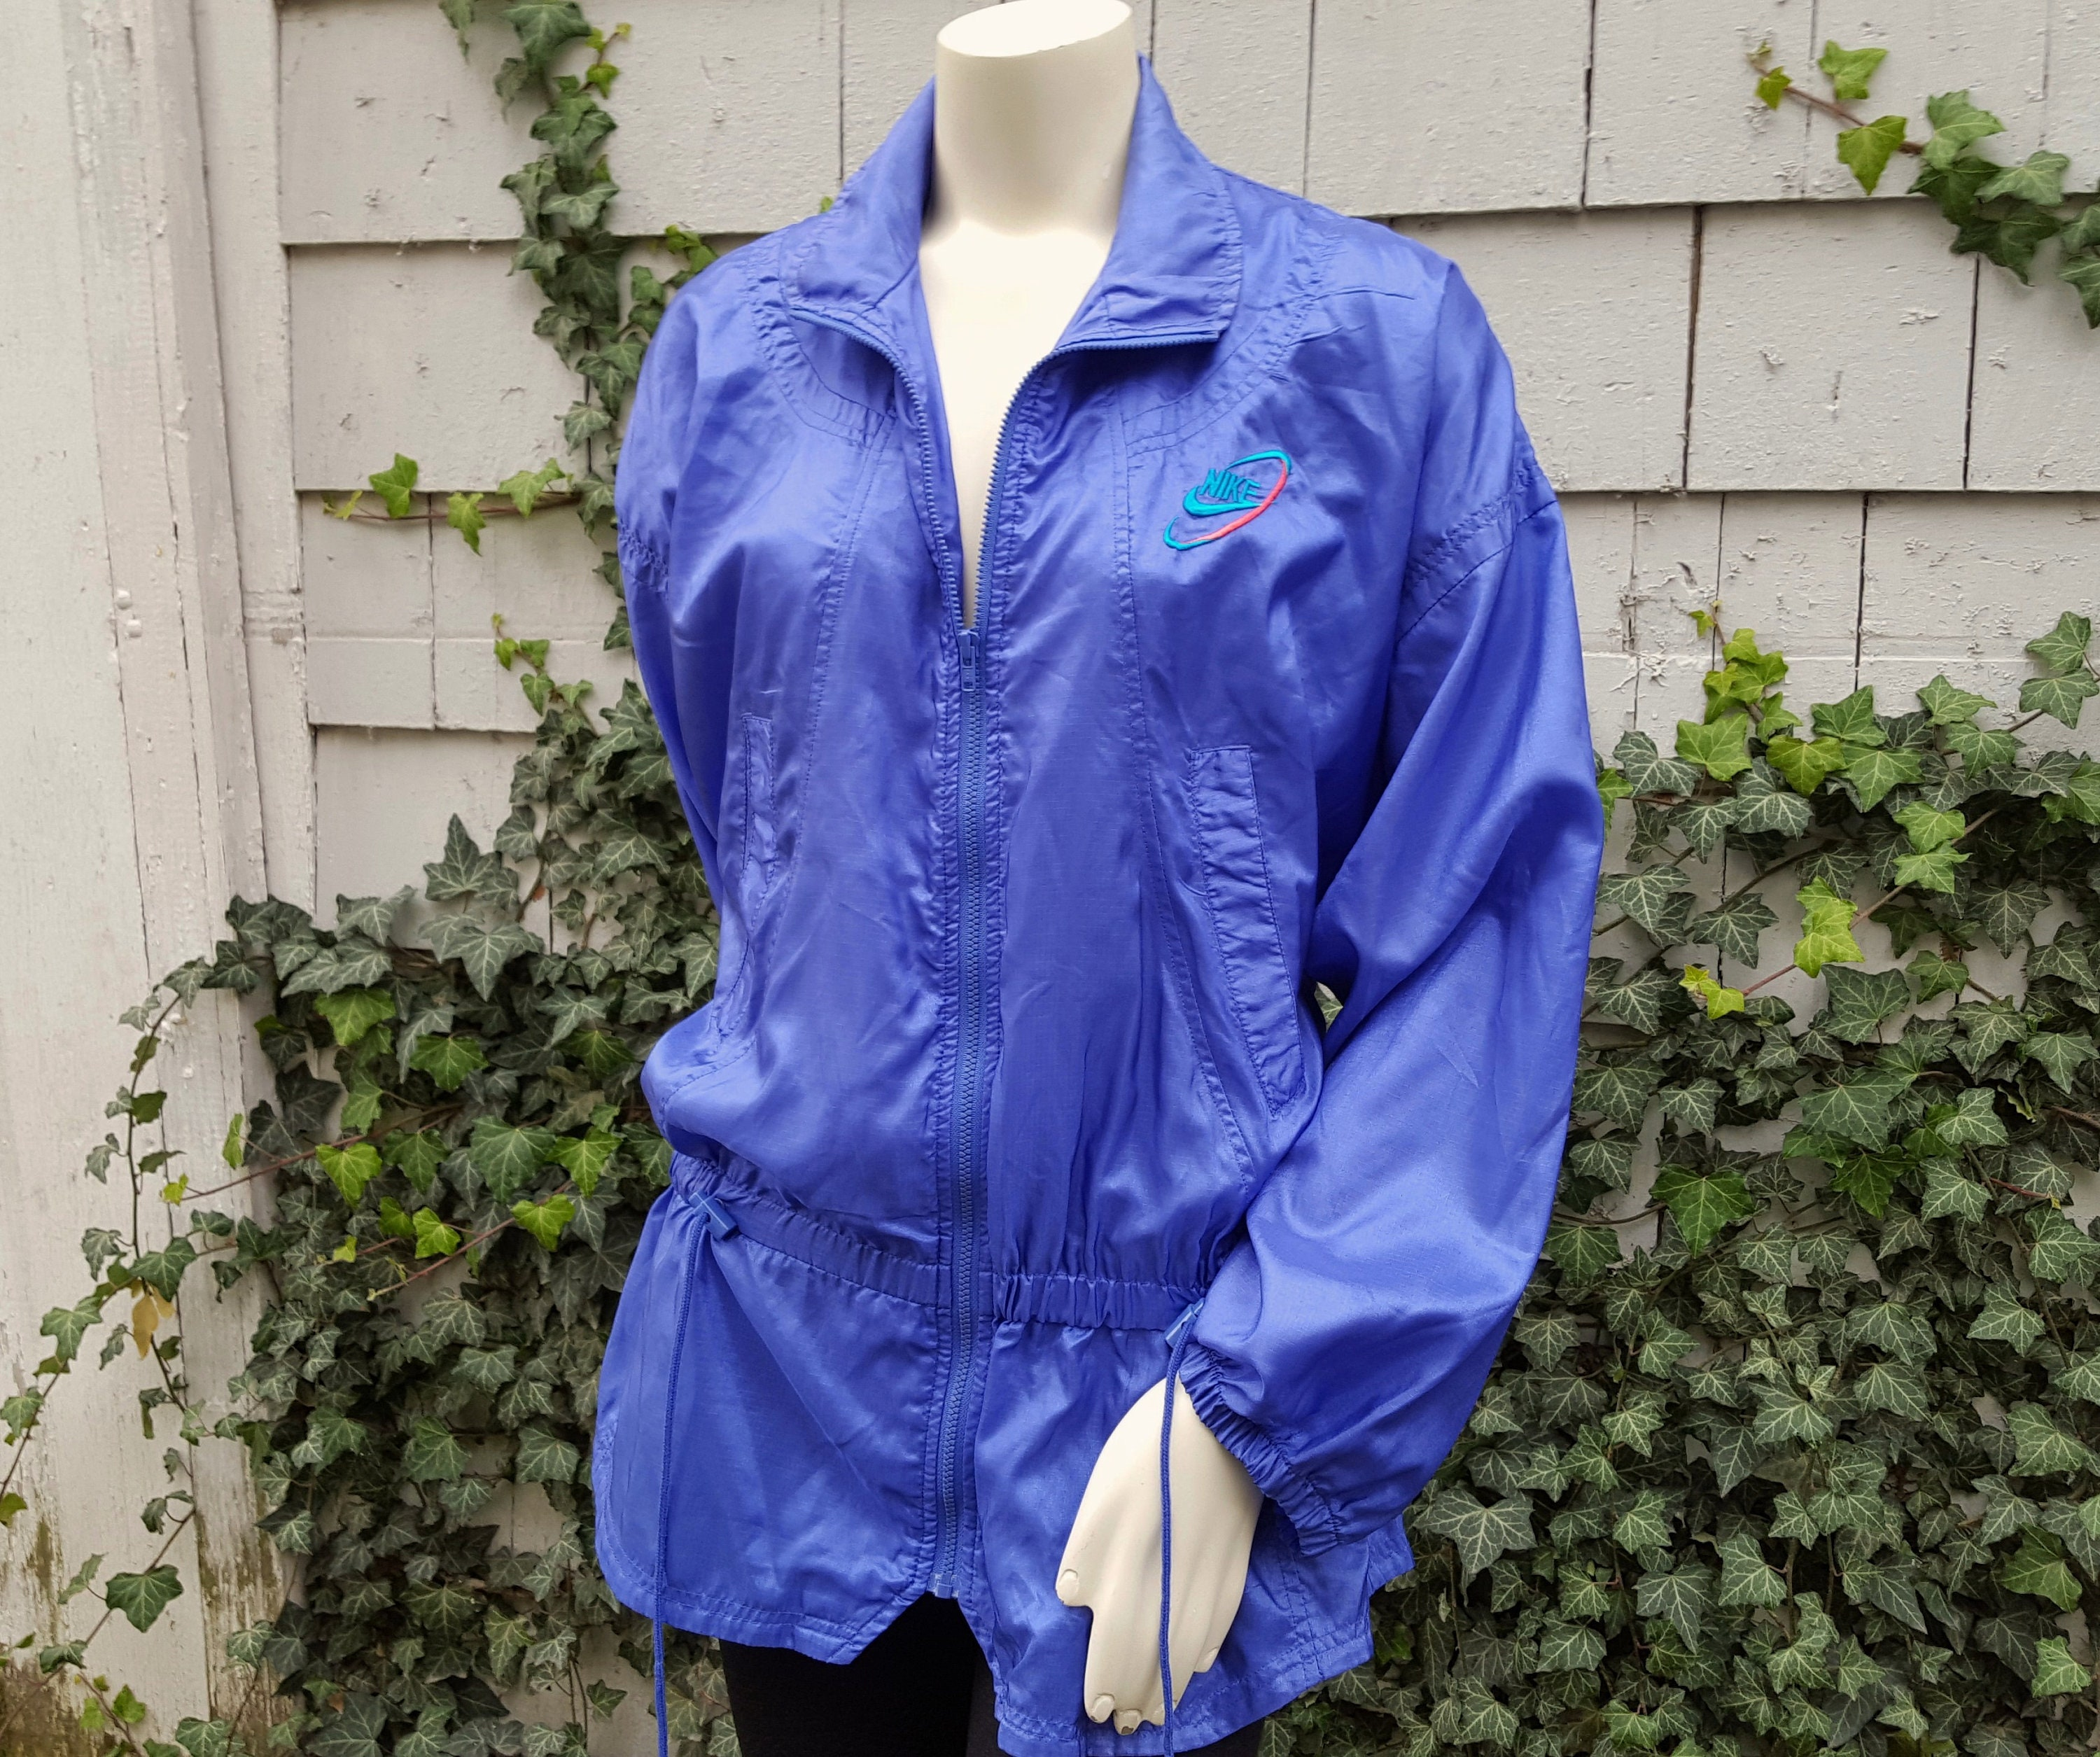 b964df7b Vintage 90s Nike Windbreaker Jacket Purple Blue Nylon LONG Lightweight Lady  Footlocker Exclusive Athletic Street Wear Swoosh Logo 1990s